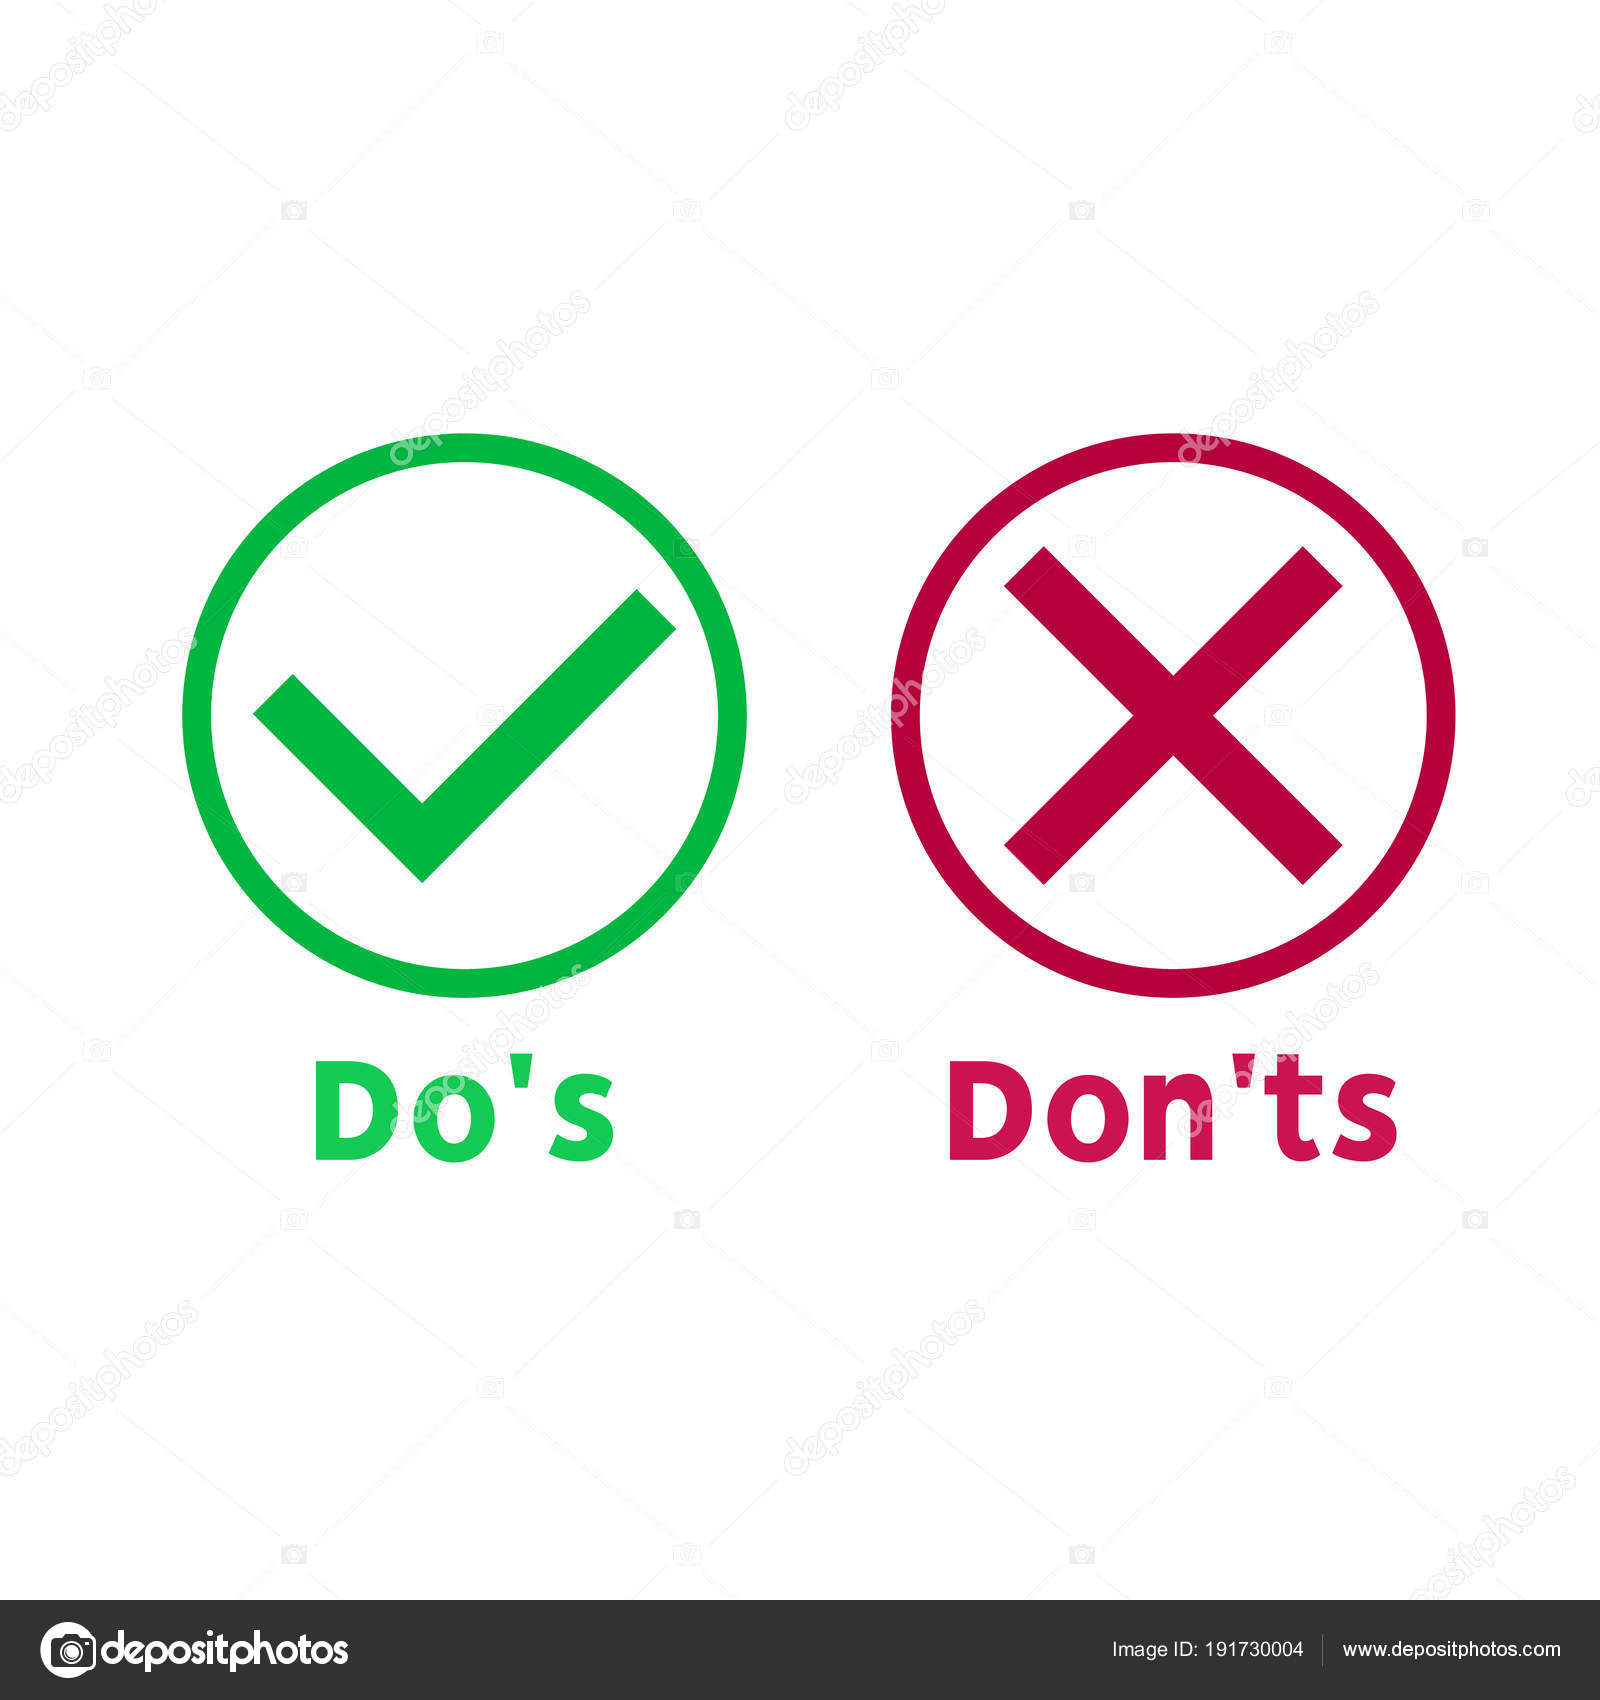 Simple Dos And Donts Like Checklist Flat Graphic Outline Design